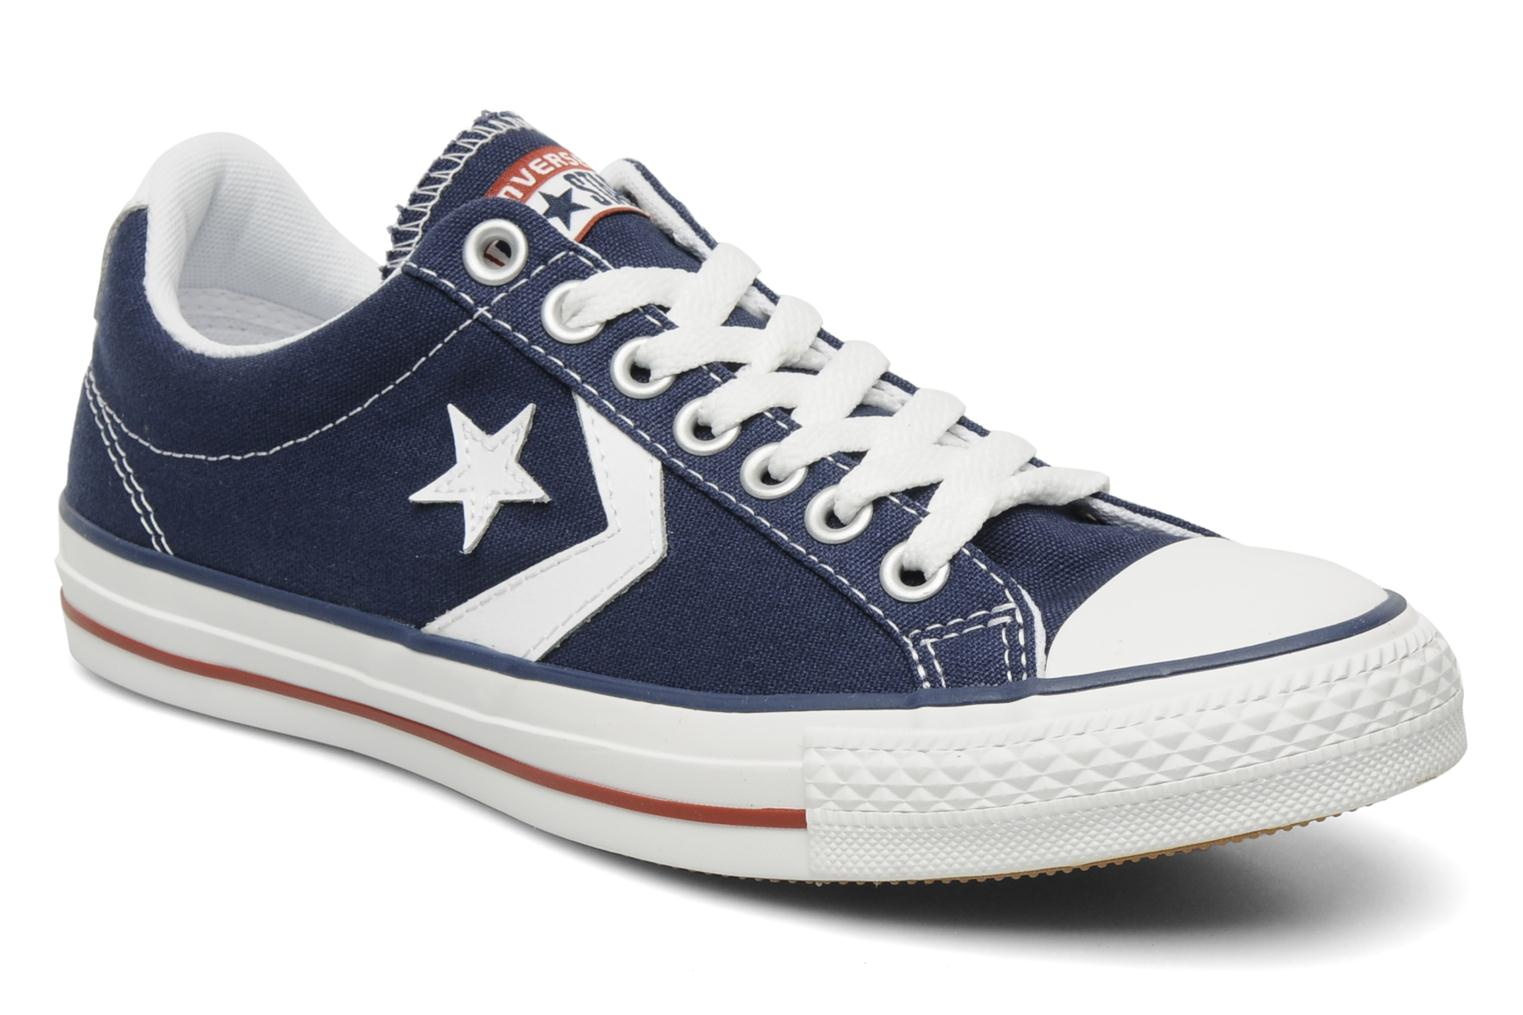 Converse STAR PLAYER OX Blue - Chaussures Basket Homme